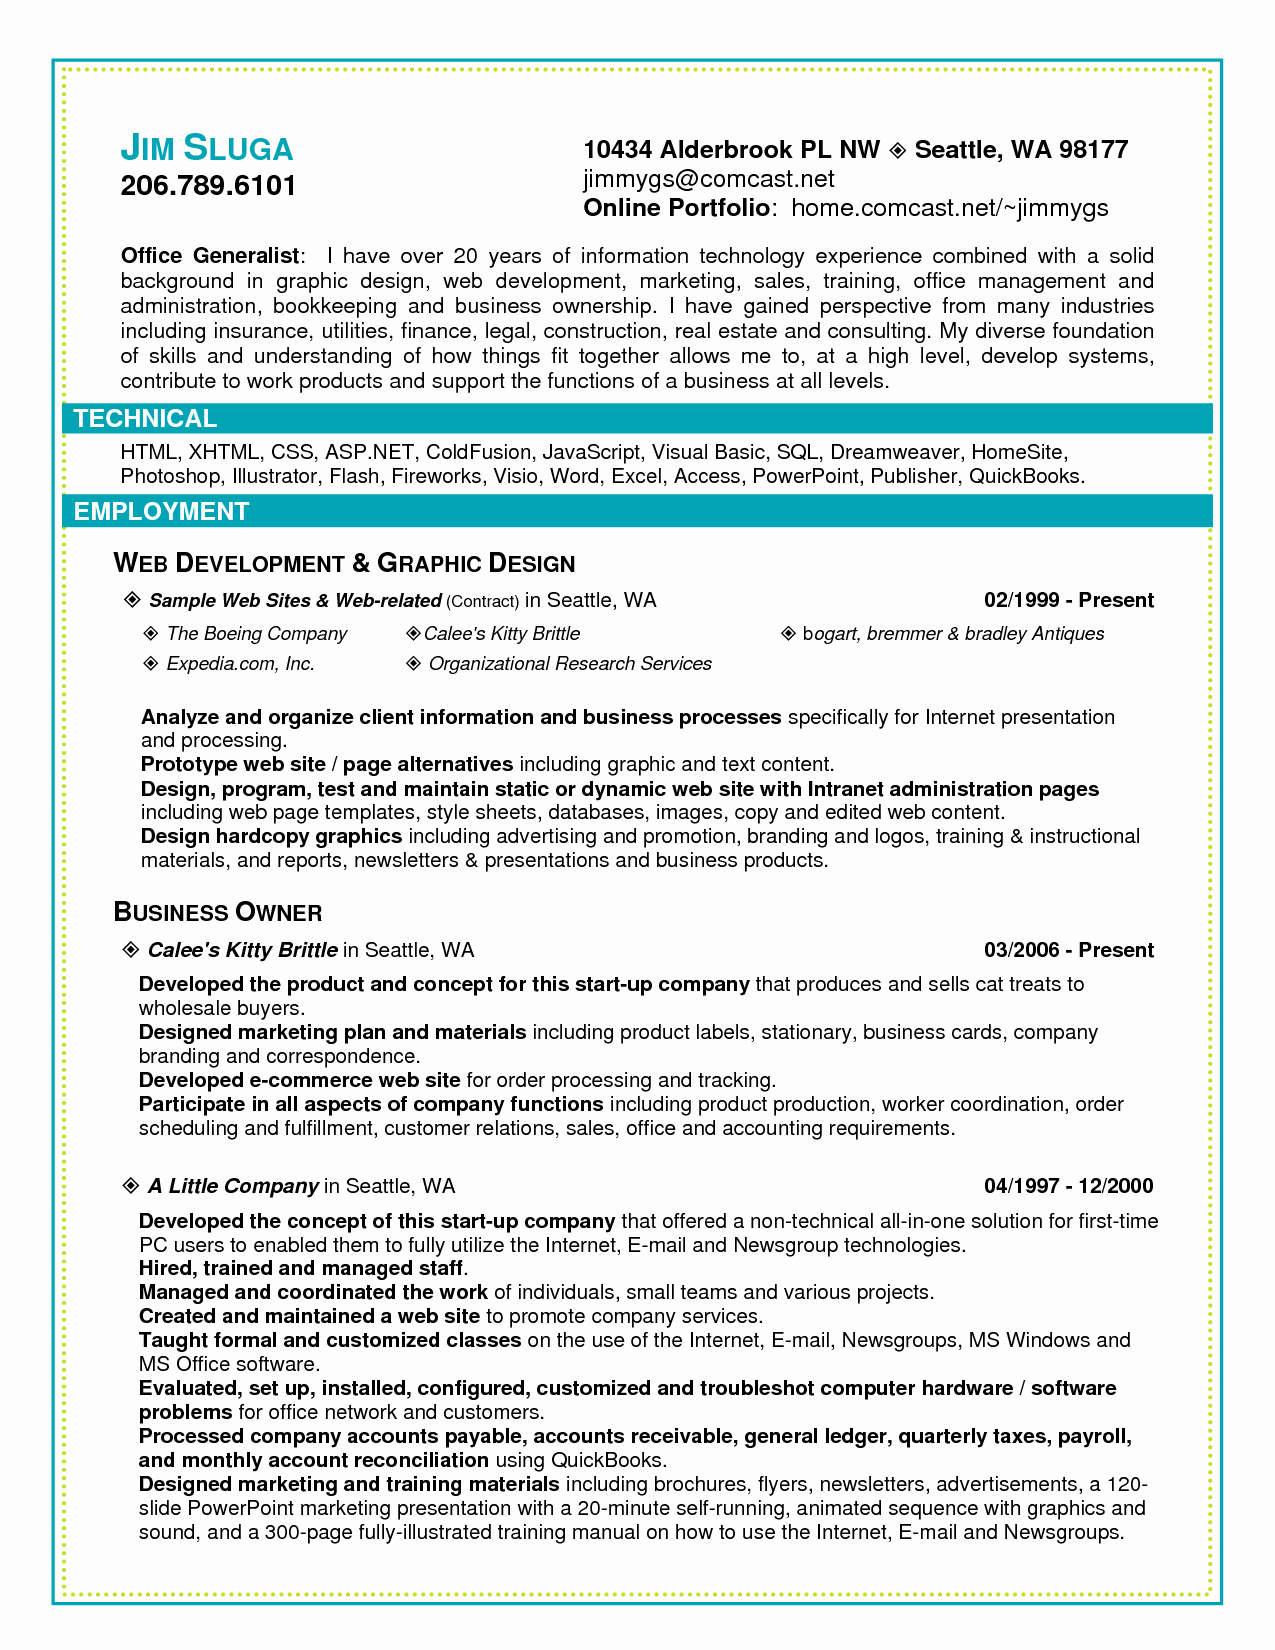 Graphic Design Contract Template Best Of Graphic Design Gallery Category Page 9 Designtos